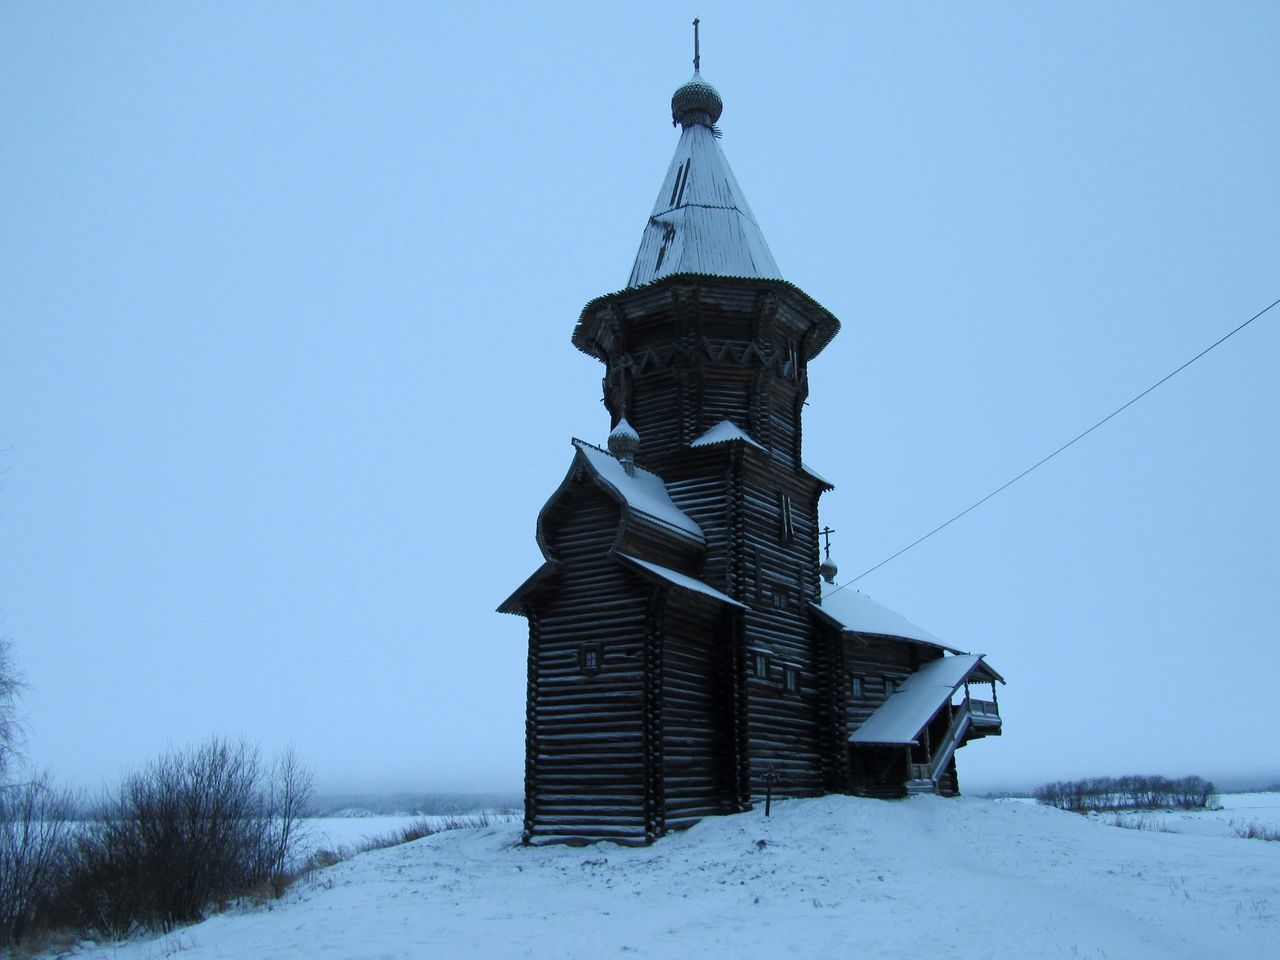 Snow Winter No People Architecture Cold Temperature Sky Day Karelia Karelian Nature New Years 2015 Church Minimalist Architecture The Architect - 2017 EyeEm Awards